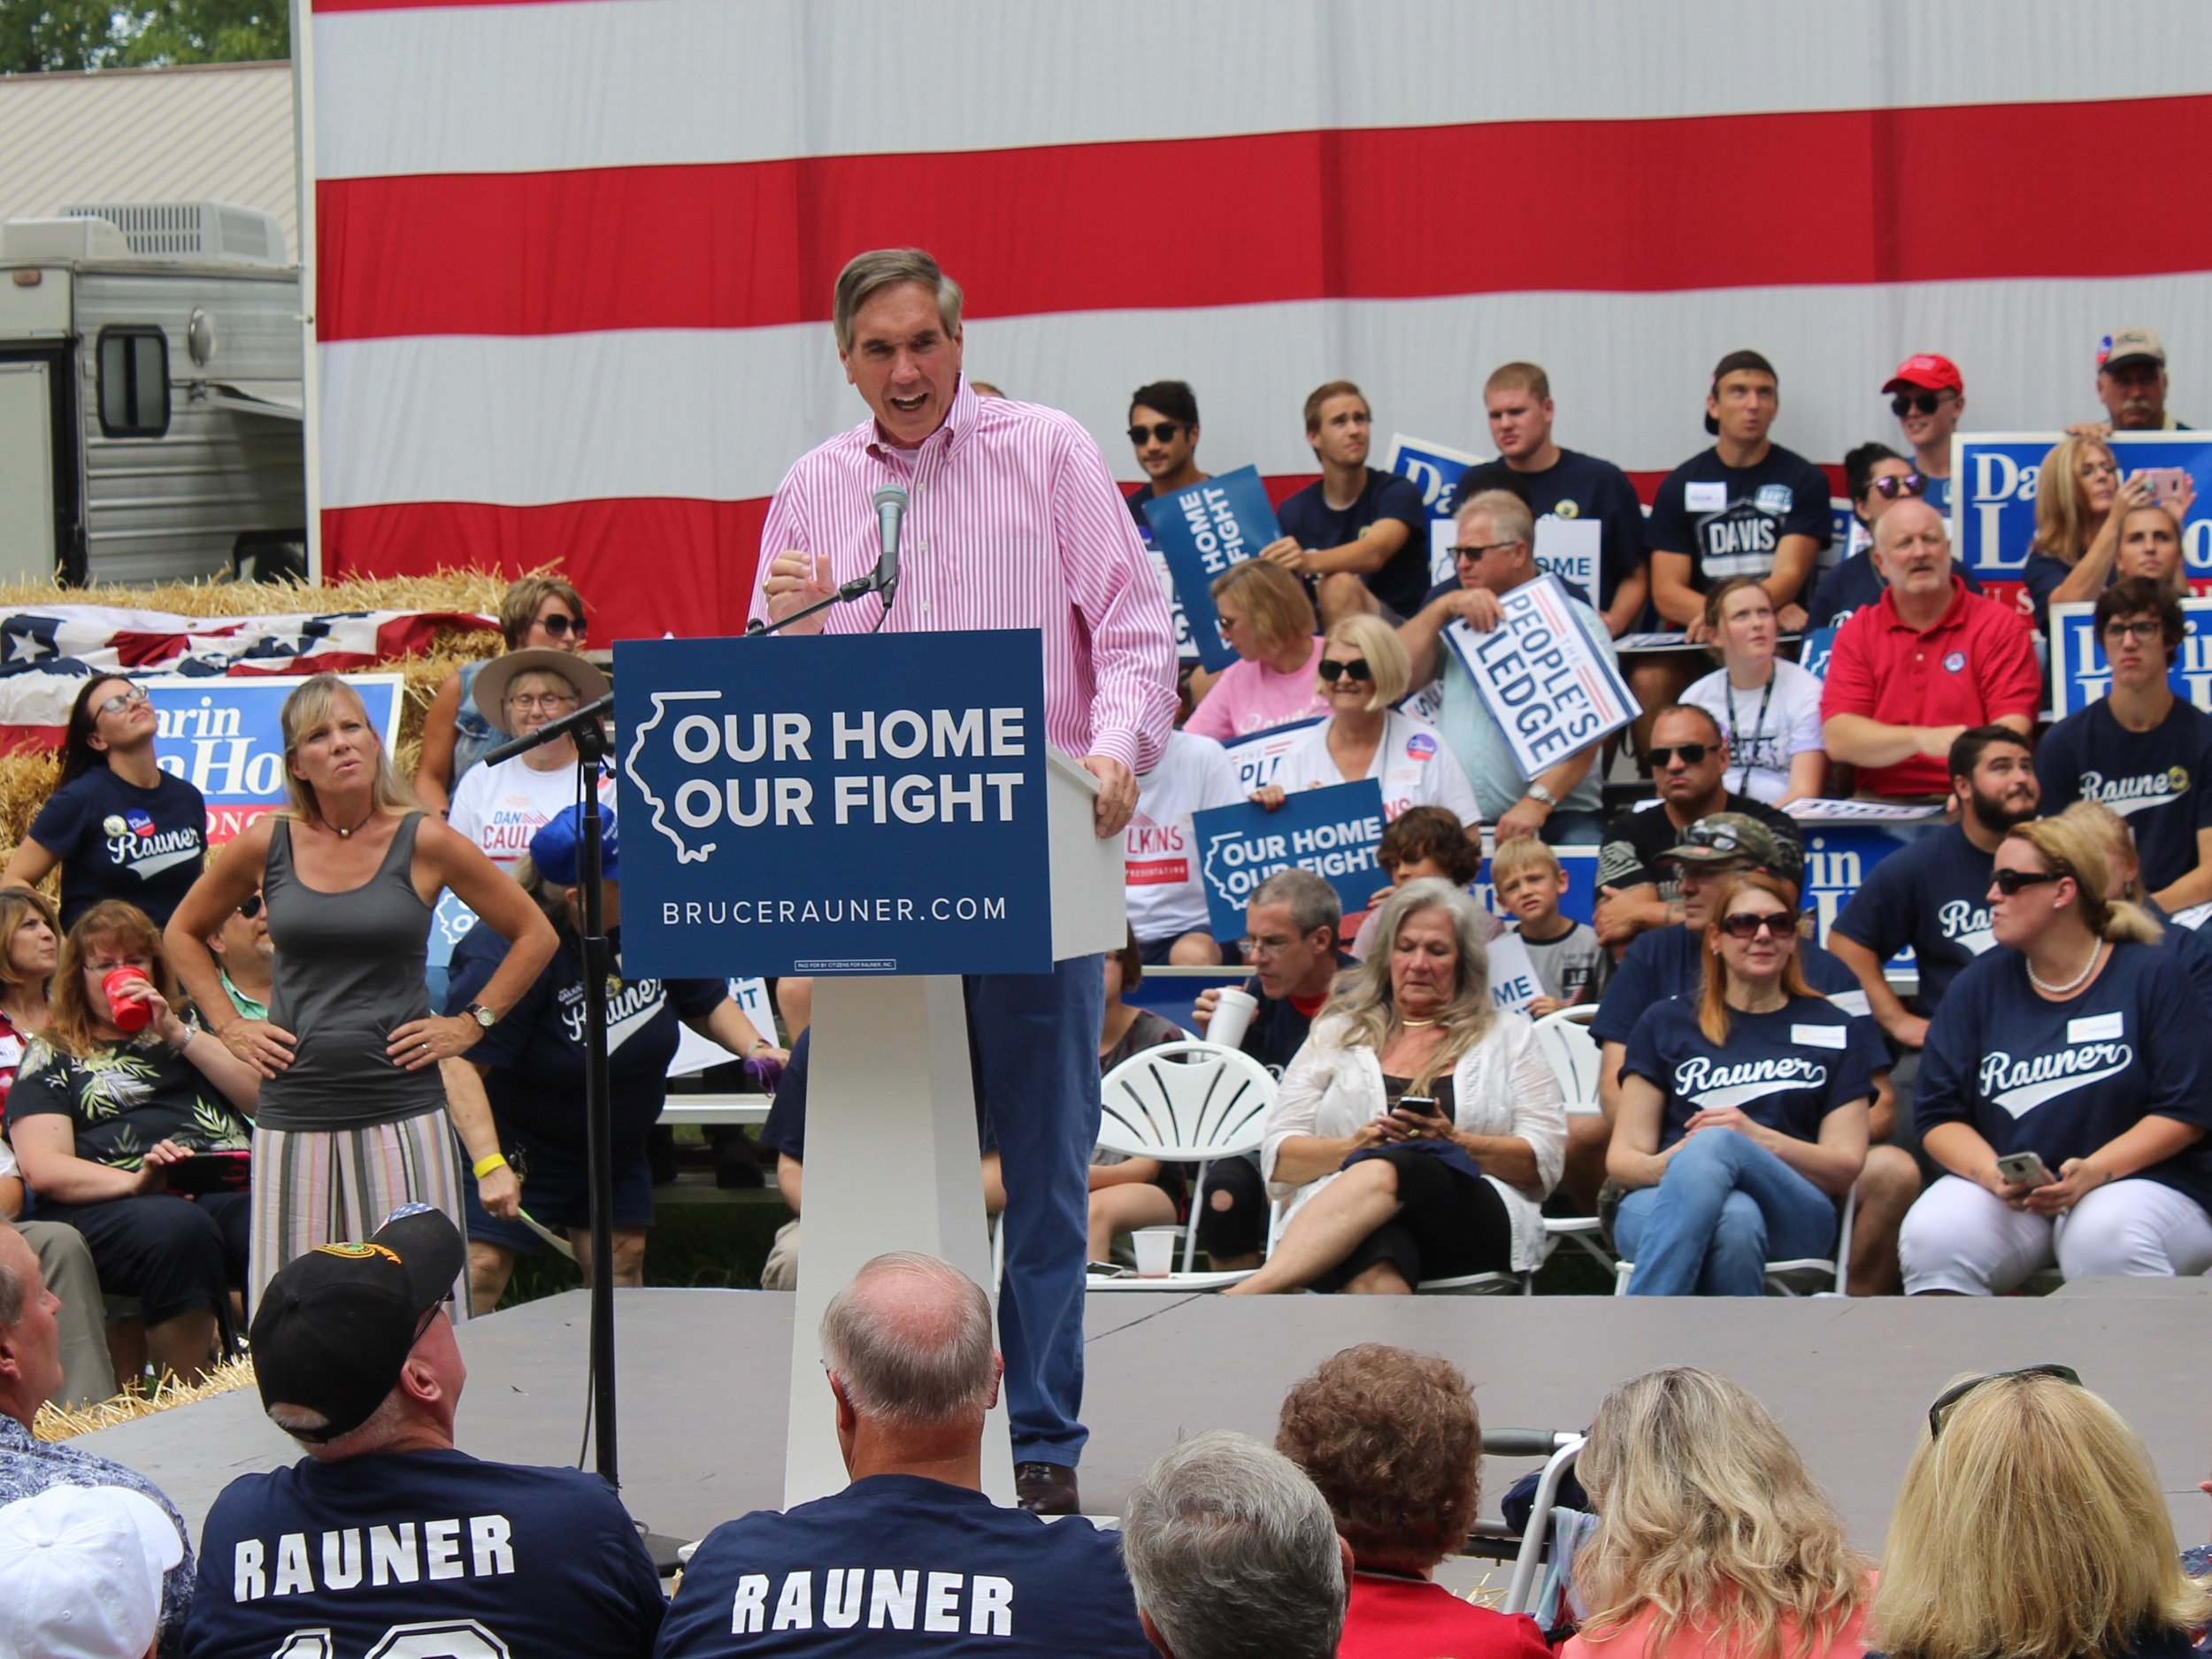 State Republican Party Chairman Timothy Schneider rallies supporters on Governor's Day at the State Fair in August. (One Illinois/Ted Cox)